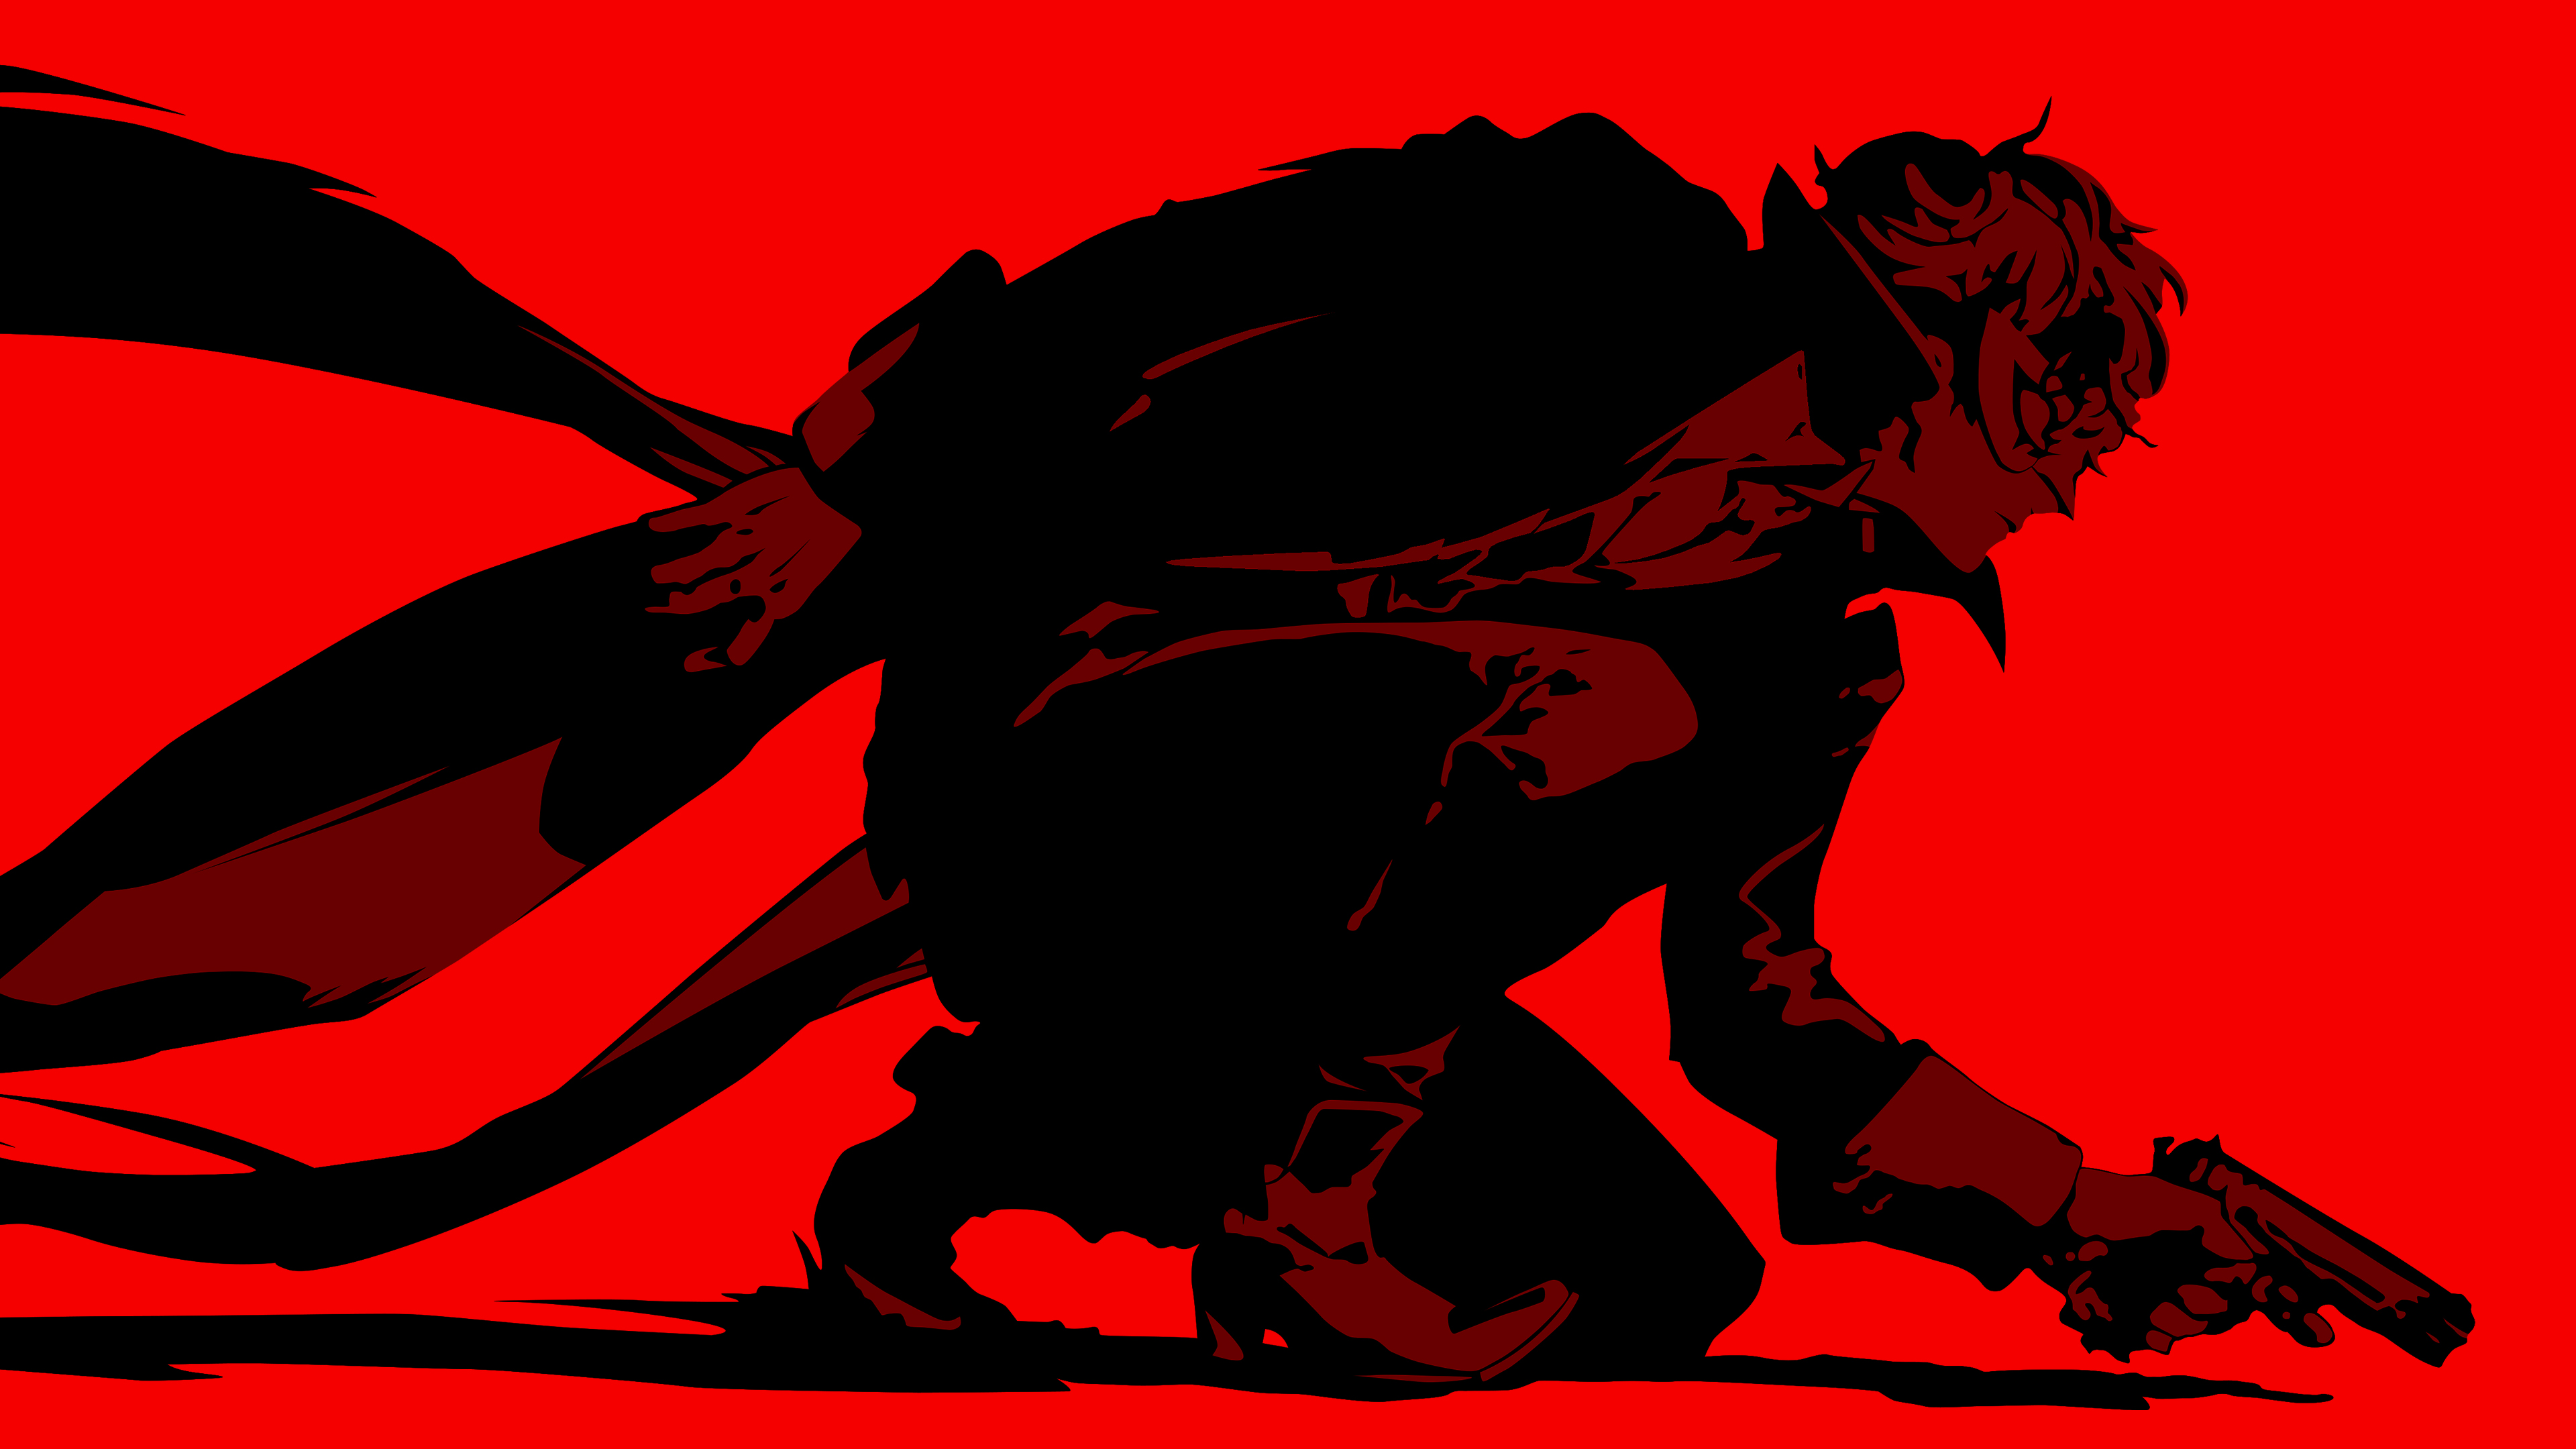 Super Persona 5 Wallpaper Full Hd Pictures